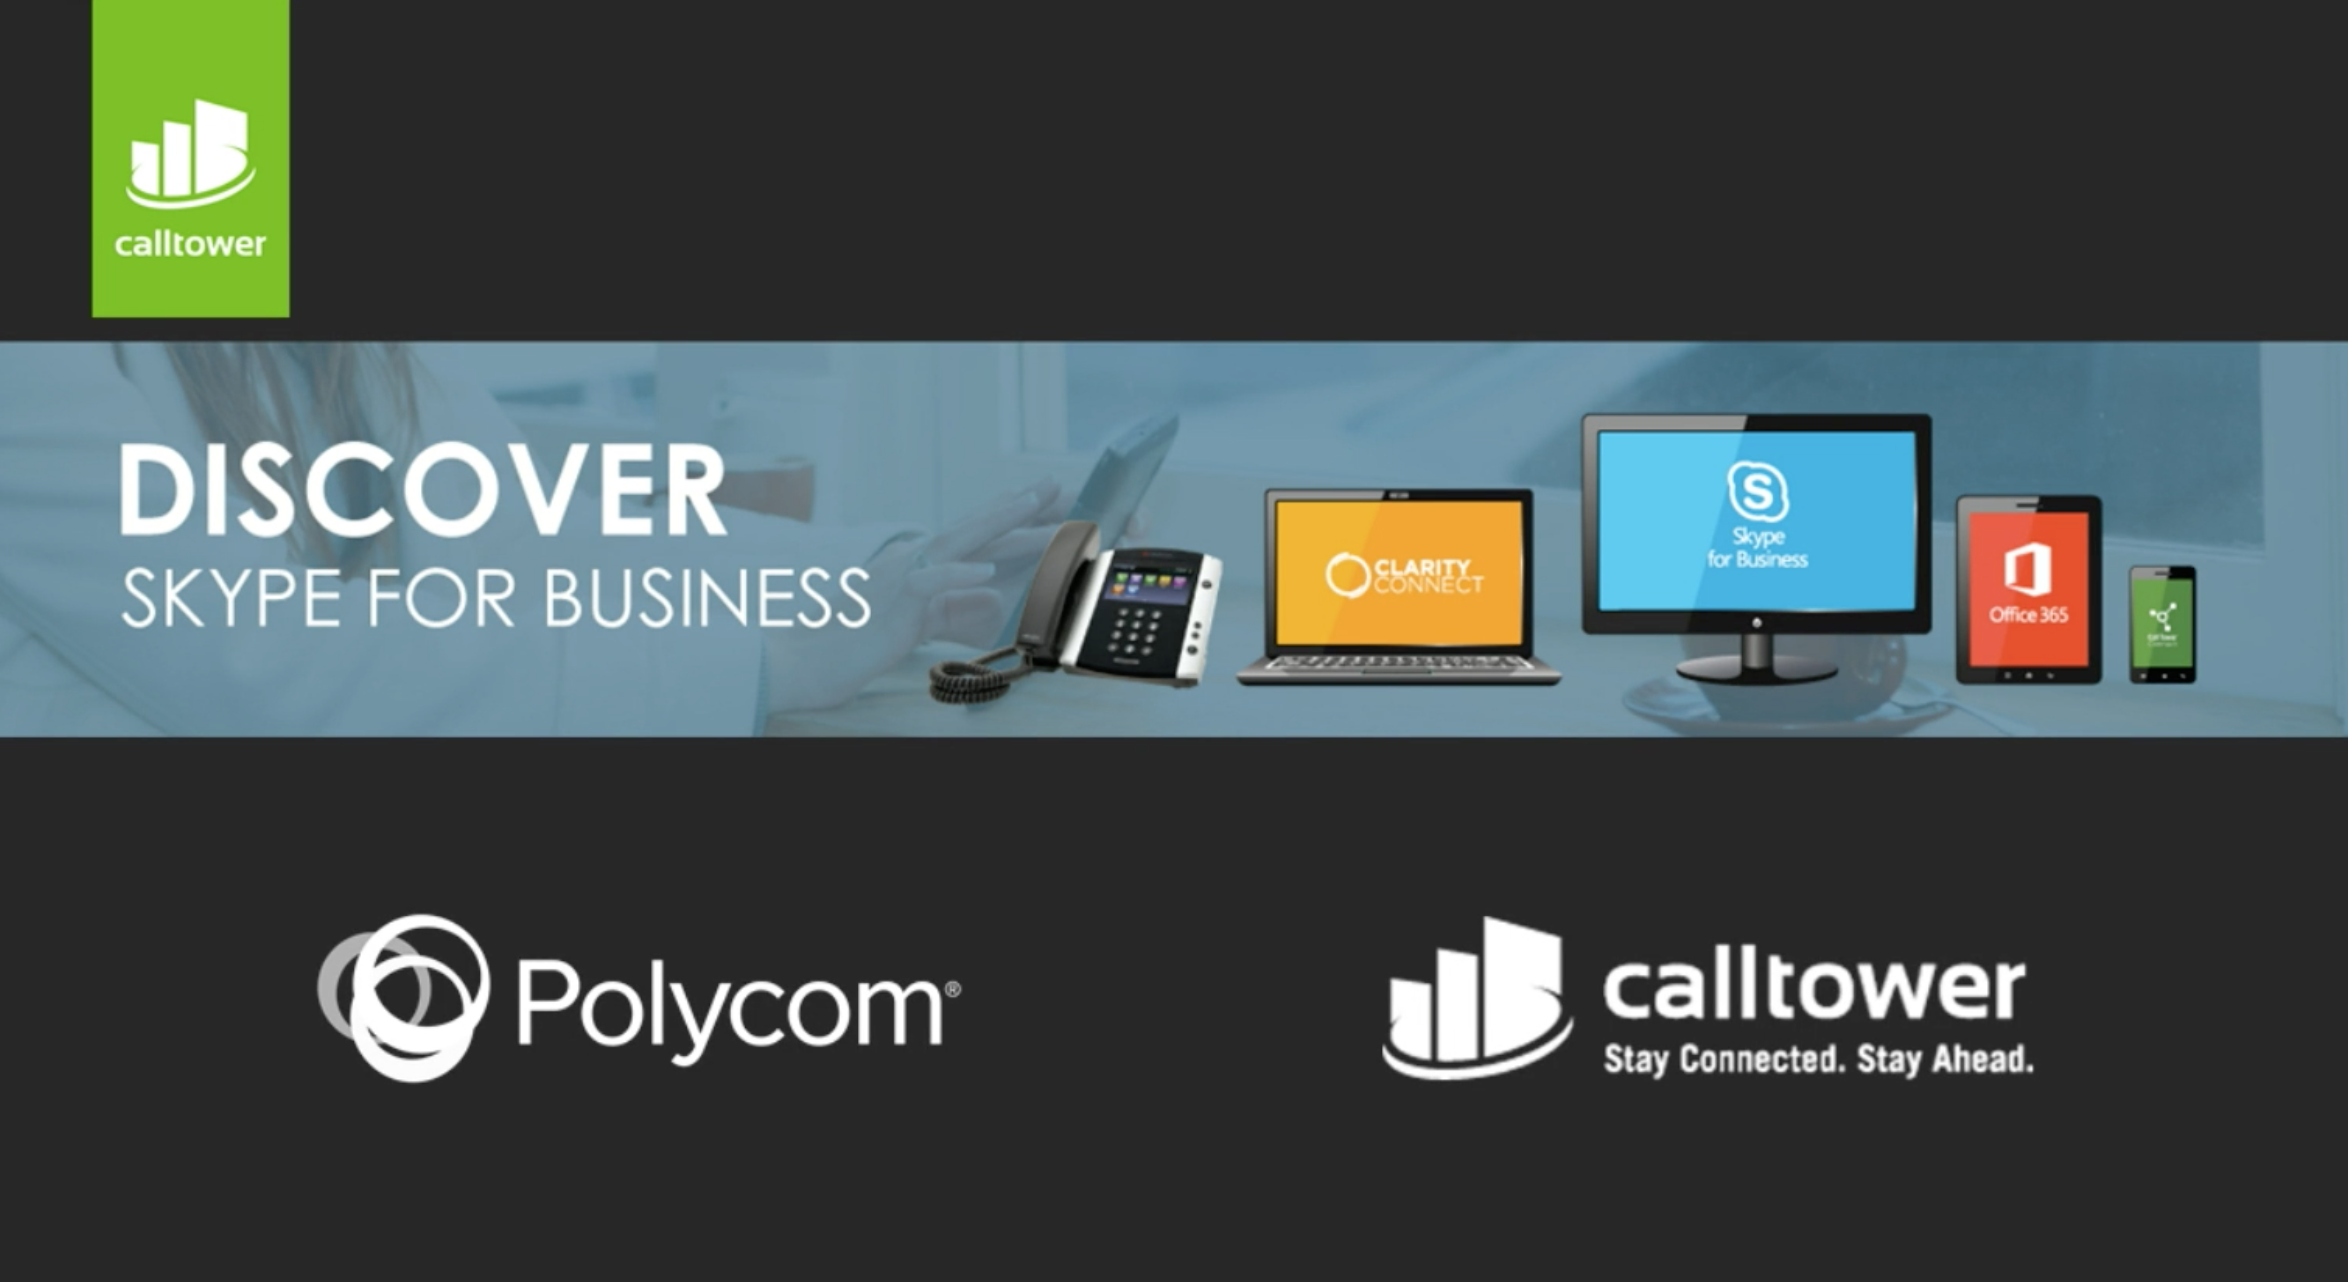 Webinar_Discover_Skype_for_Business.png